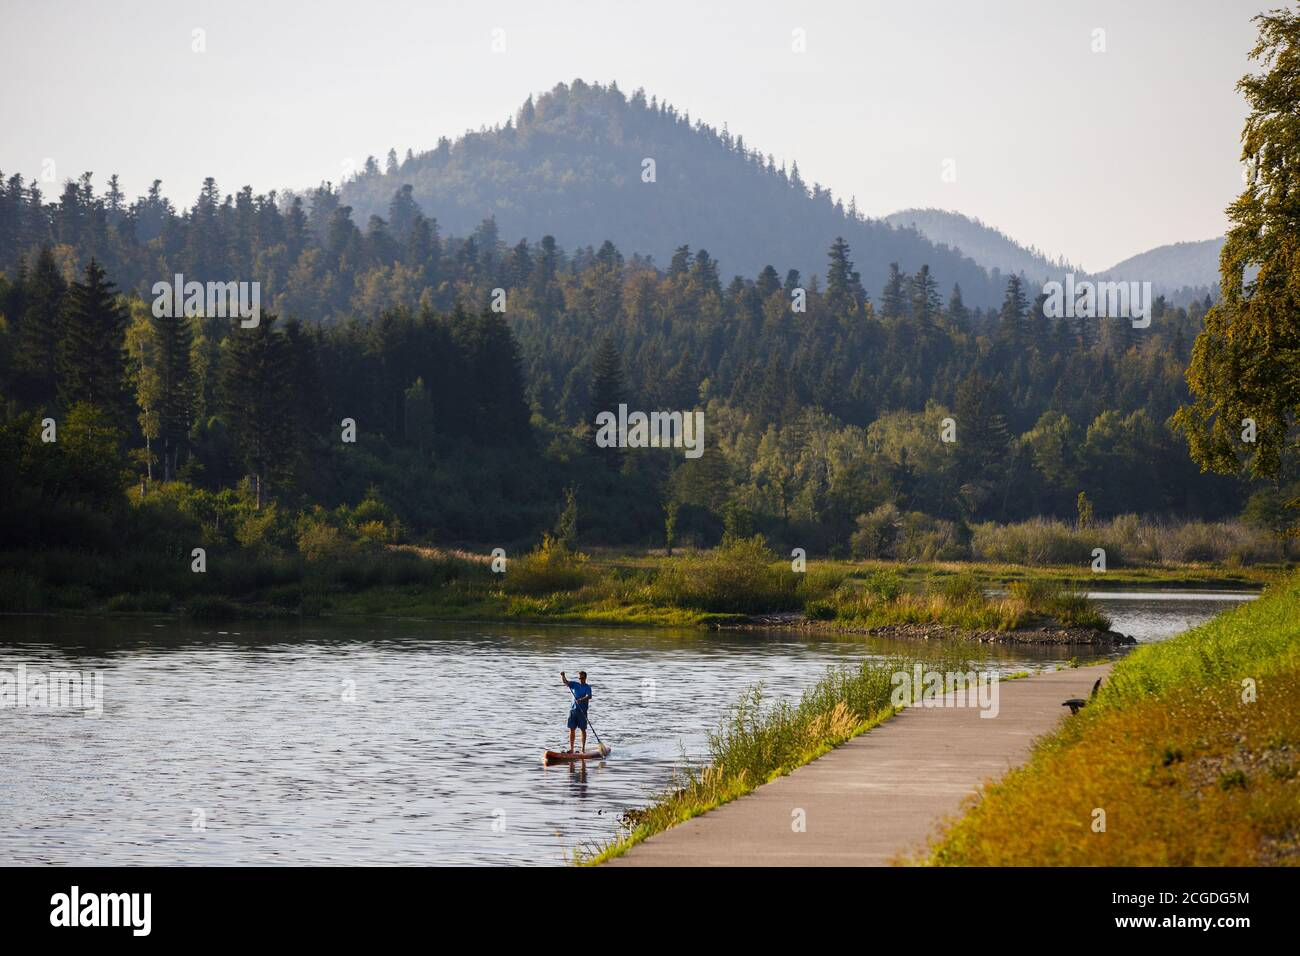 A man is seen on a standup paddleboard or SUP at a Bajer lake amid the coronavirus disease (COVID-19) outbreak in Fuzine, Croatia, September 10, 2020. REUTERS/Antonio Bronic Stock Photo